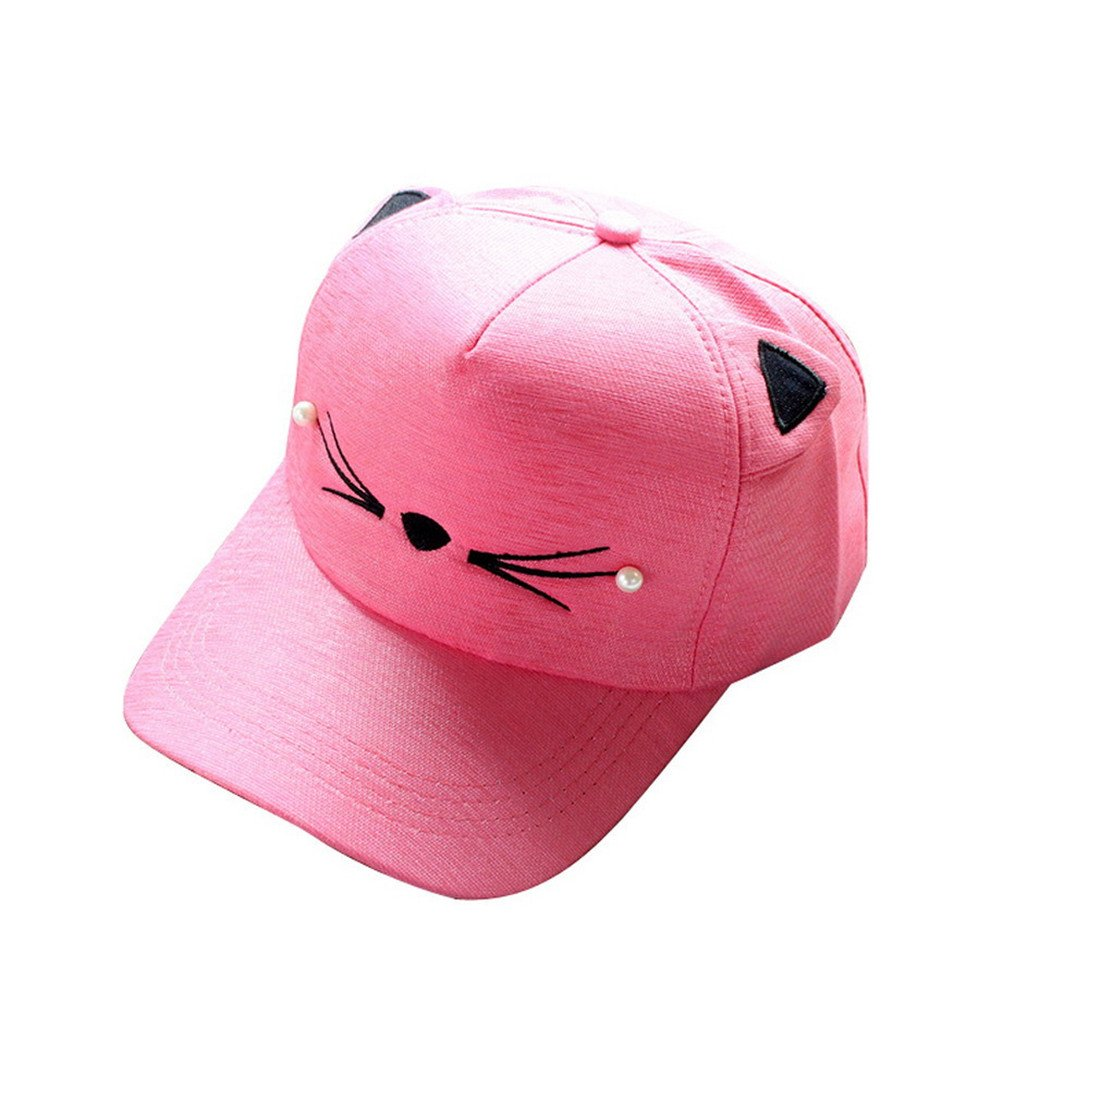 ACVIP Baby Kids Cat Face Shape Baseball Hat